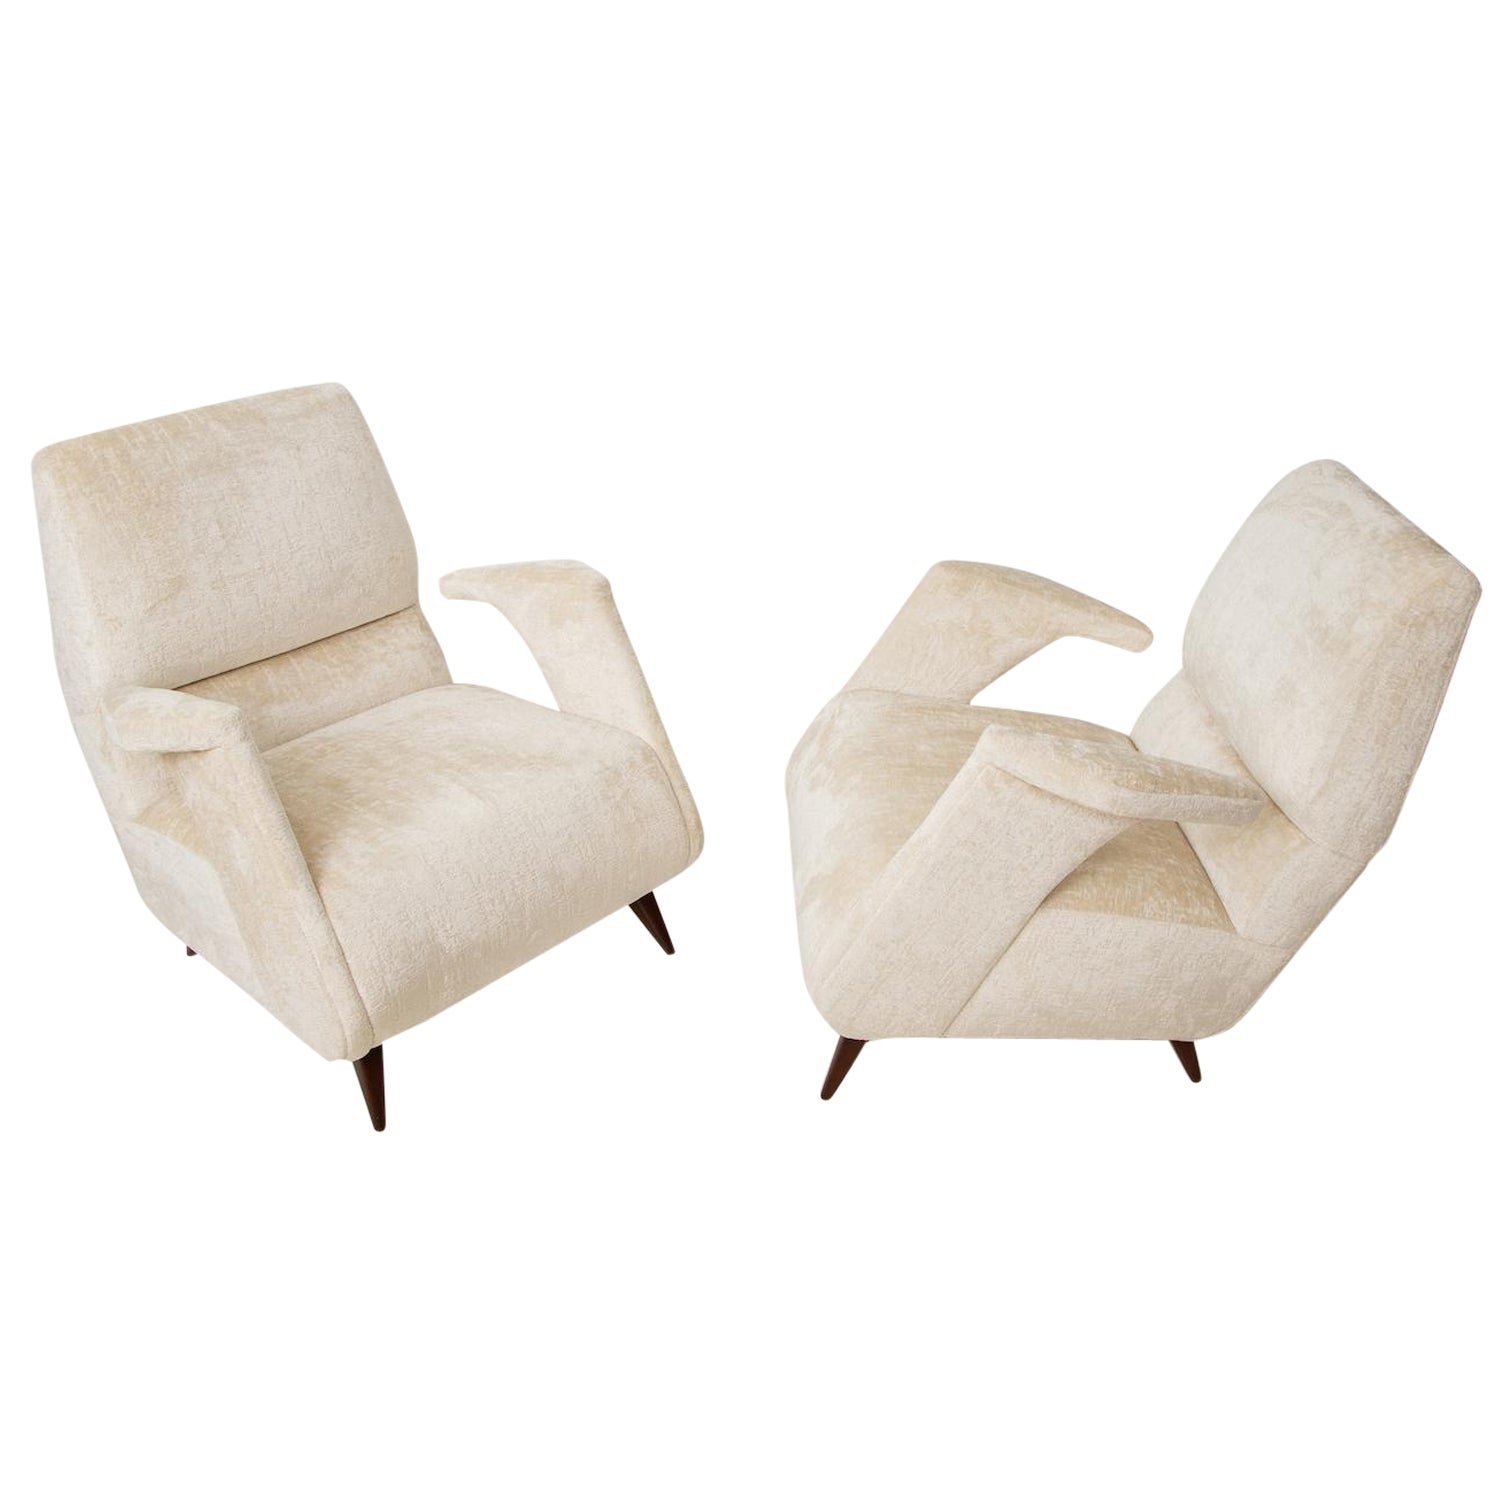 Mid-Century Italian Lounge Chairs in the Manner of Ico Parisi